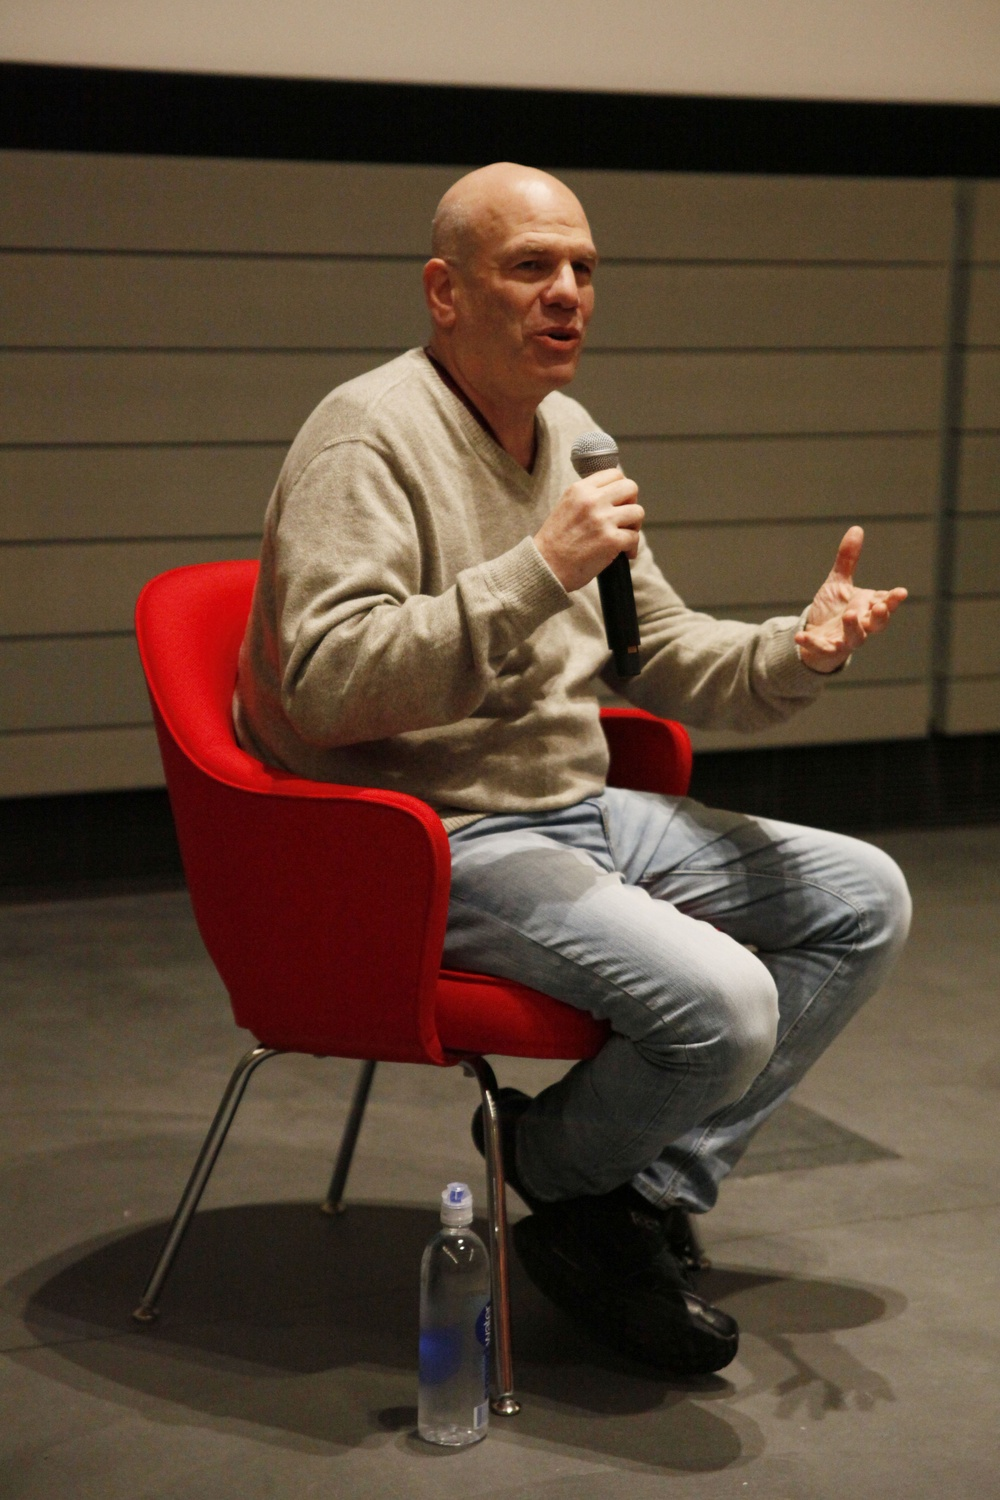 David Simon, creator of The Wire, spoke in Harvard Art Museum's Menschel Hall on Sunday afternoon.